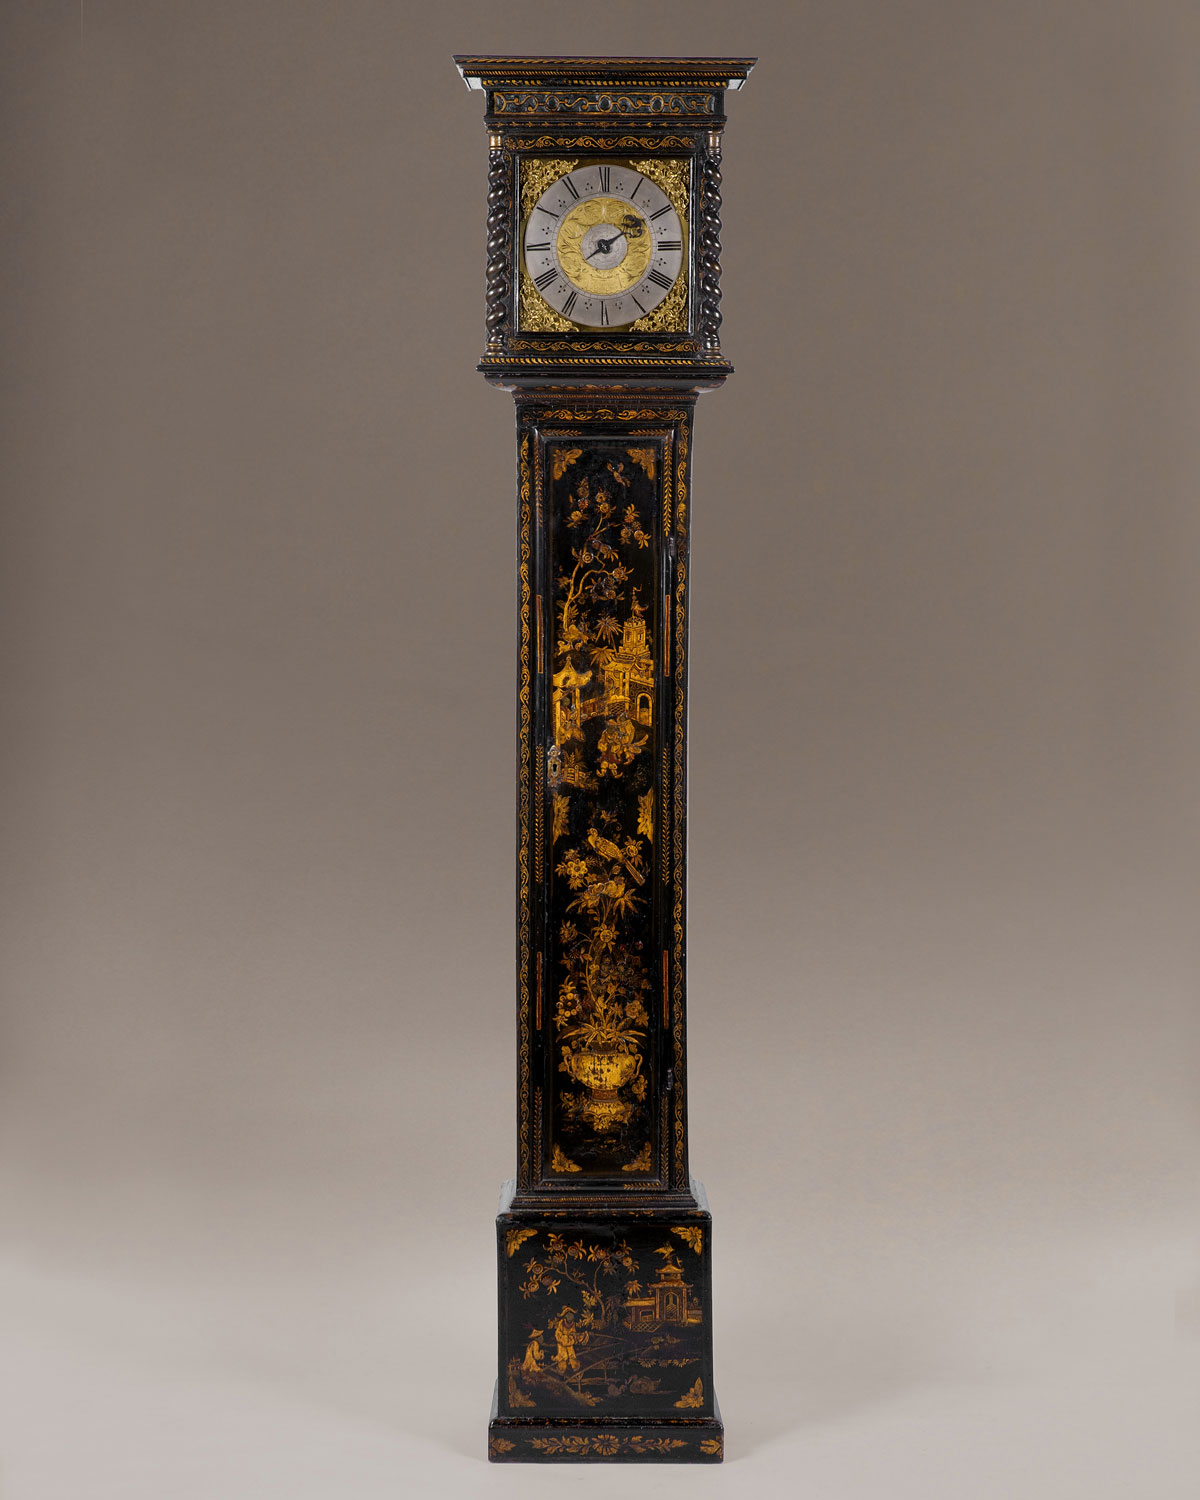 THOMAS TOMPION LONDINI FECIT. A rare Charles II period black and gilt chinoiserie longcase clock with alarm.